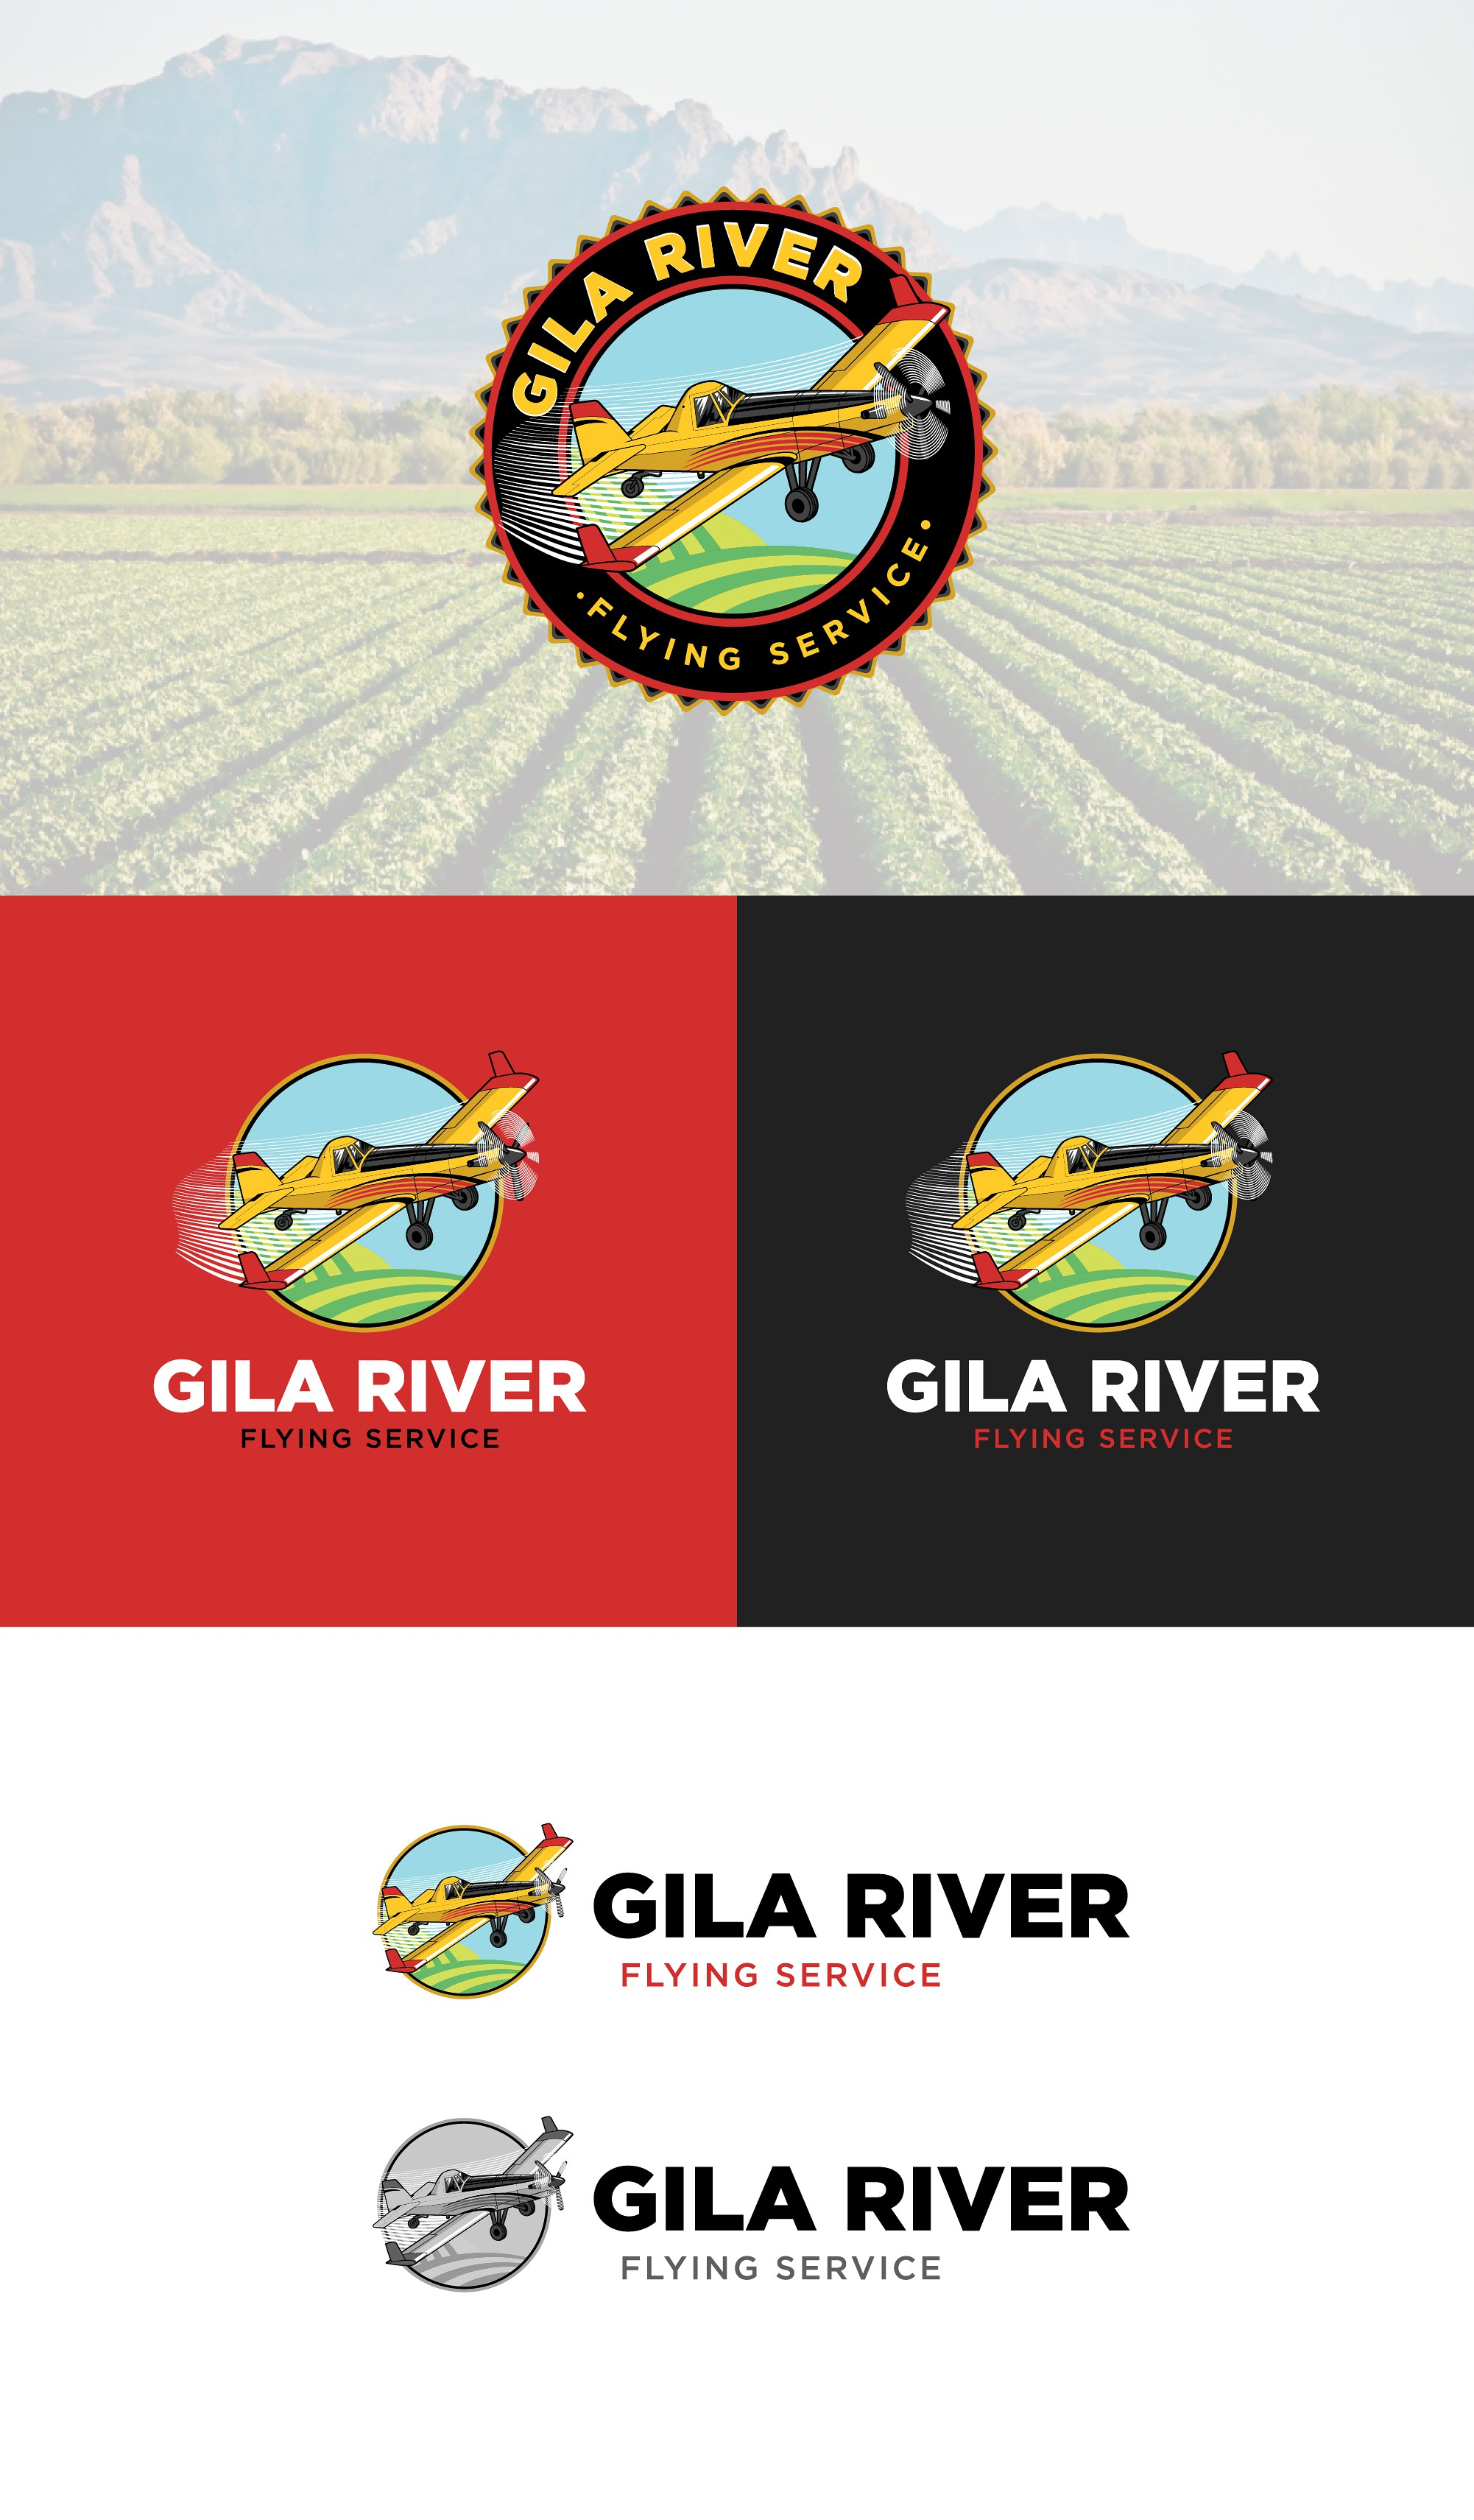 Gila River Flying Service (crop duster)